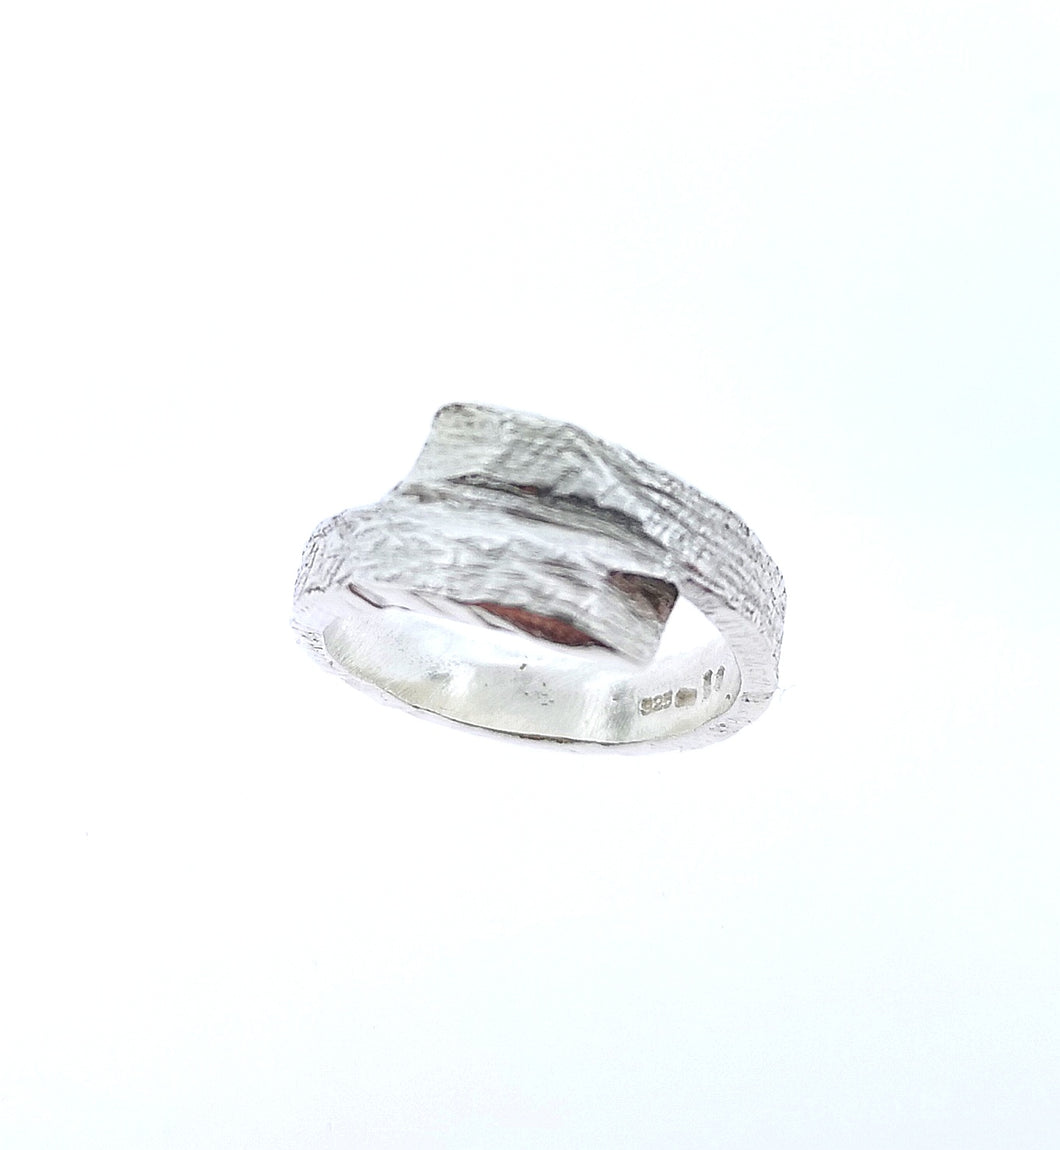 Driftwood Wrap Over Ring - 9 Karat White Gold